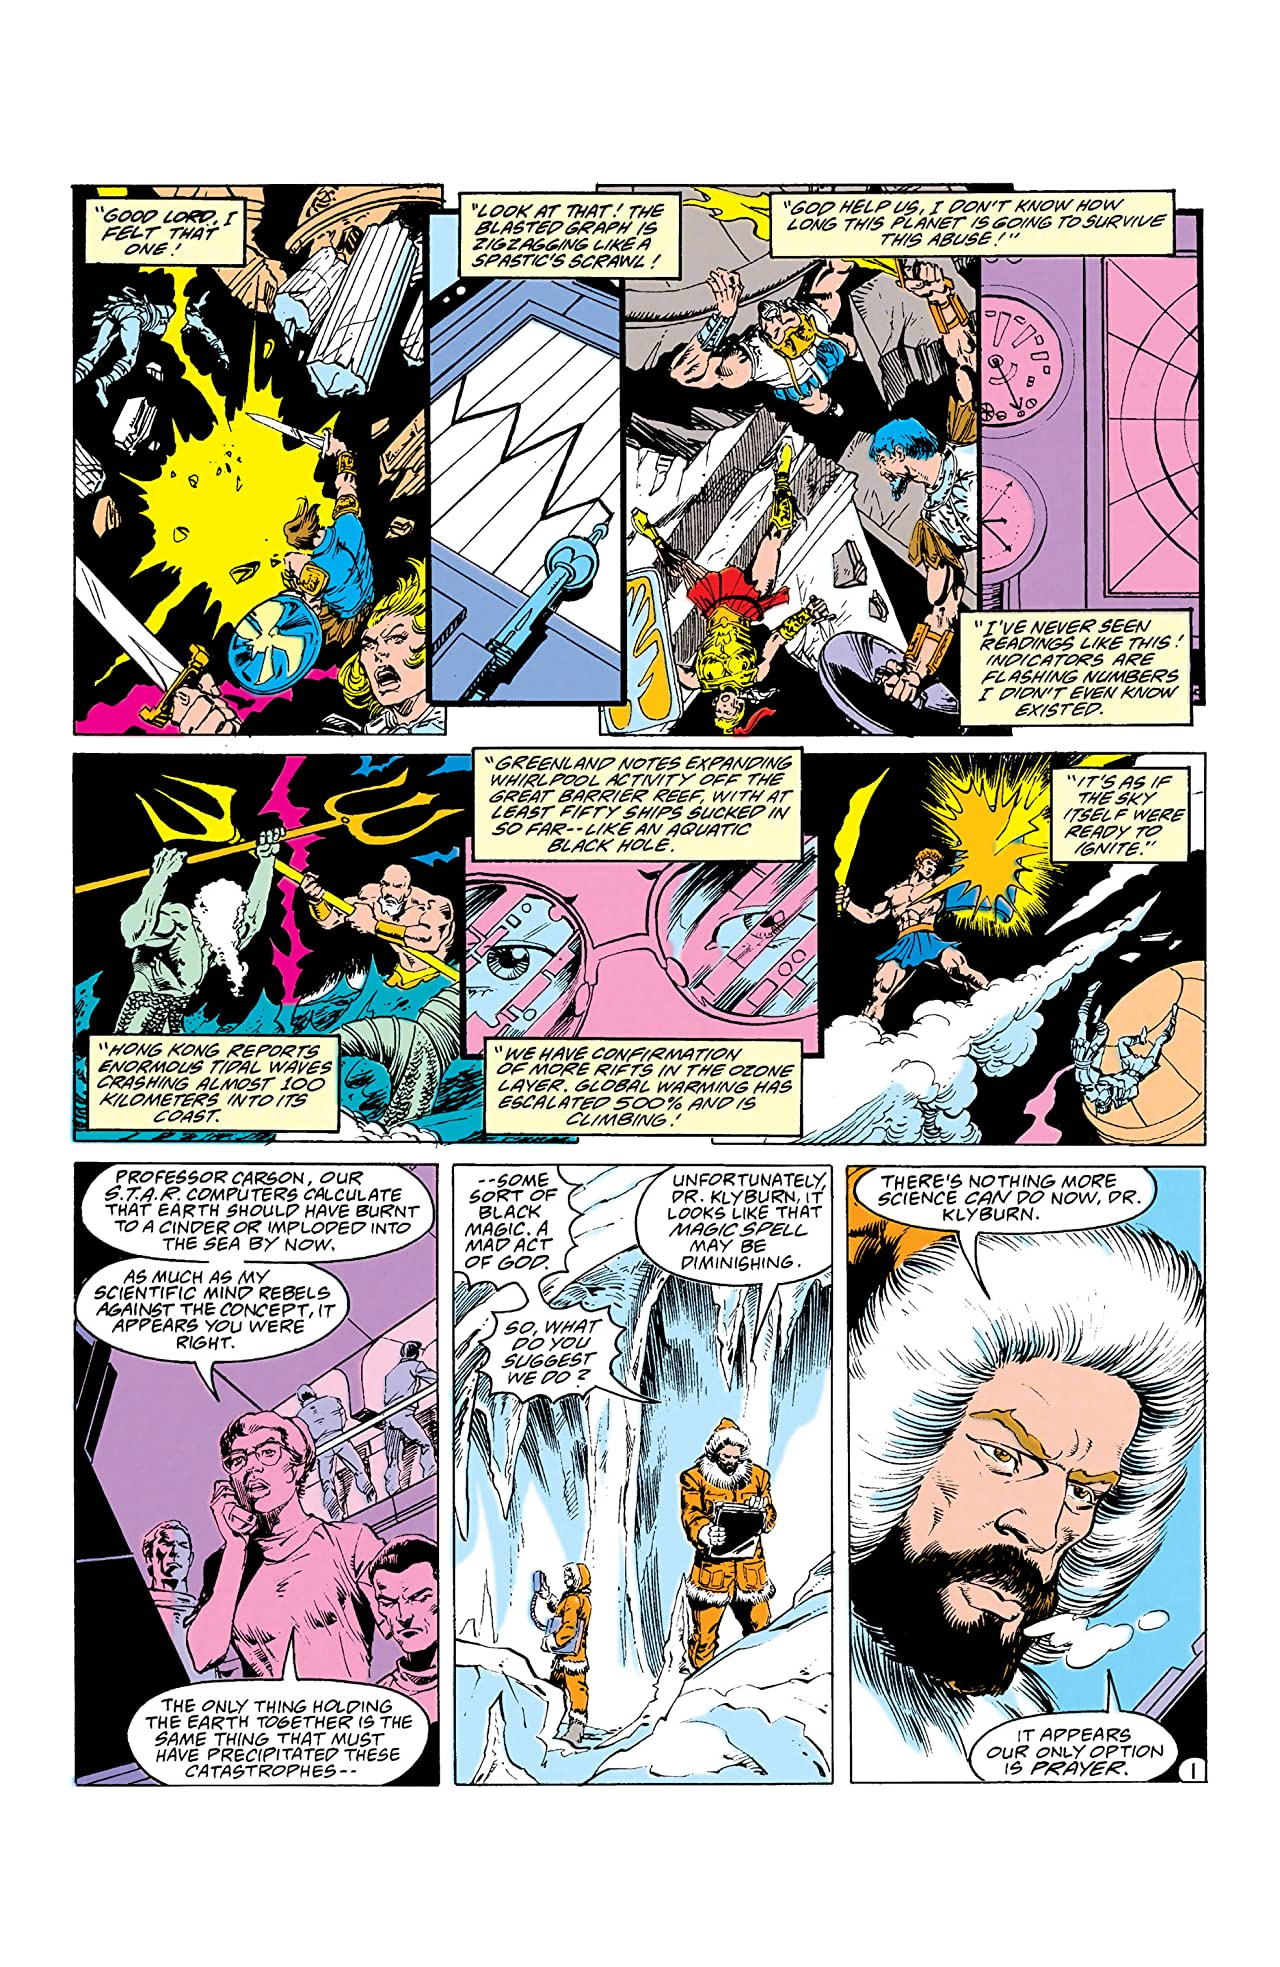 The War of the Gods (1991) #4